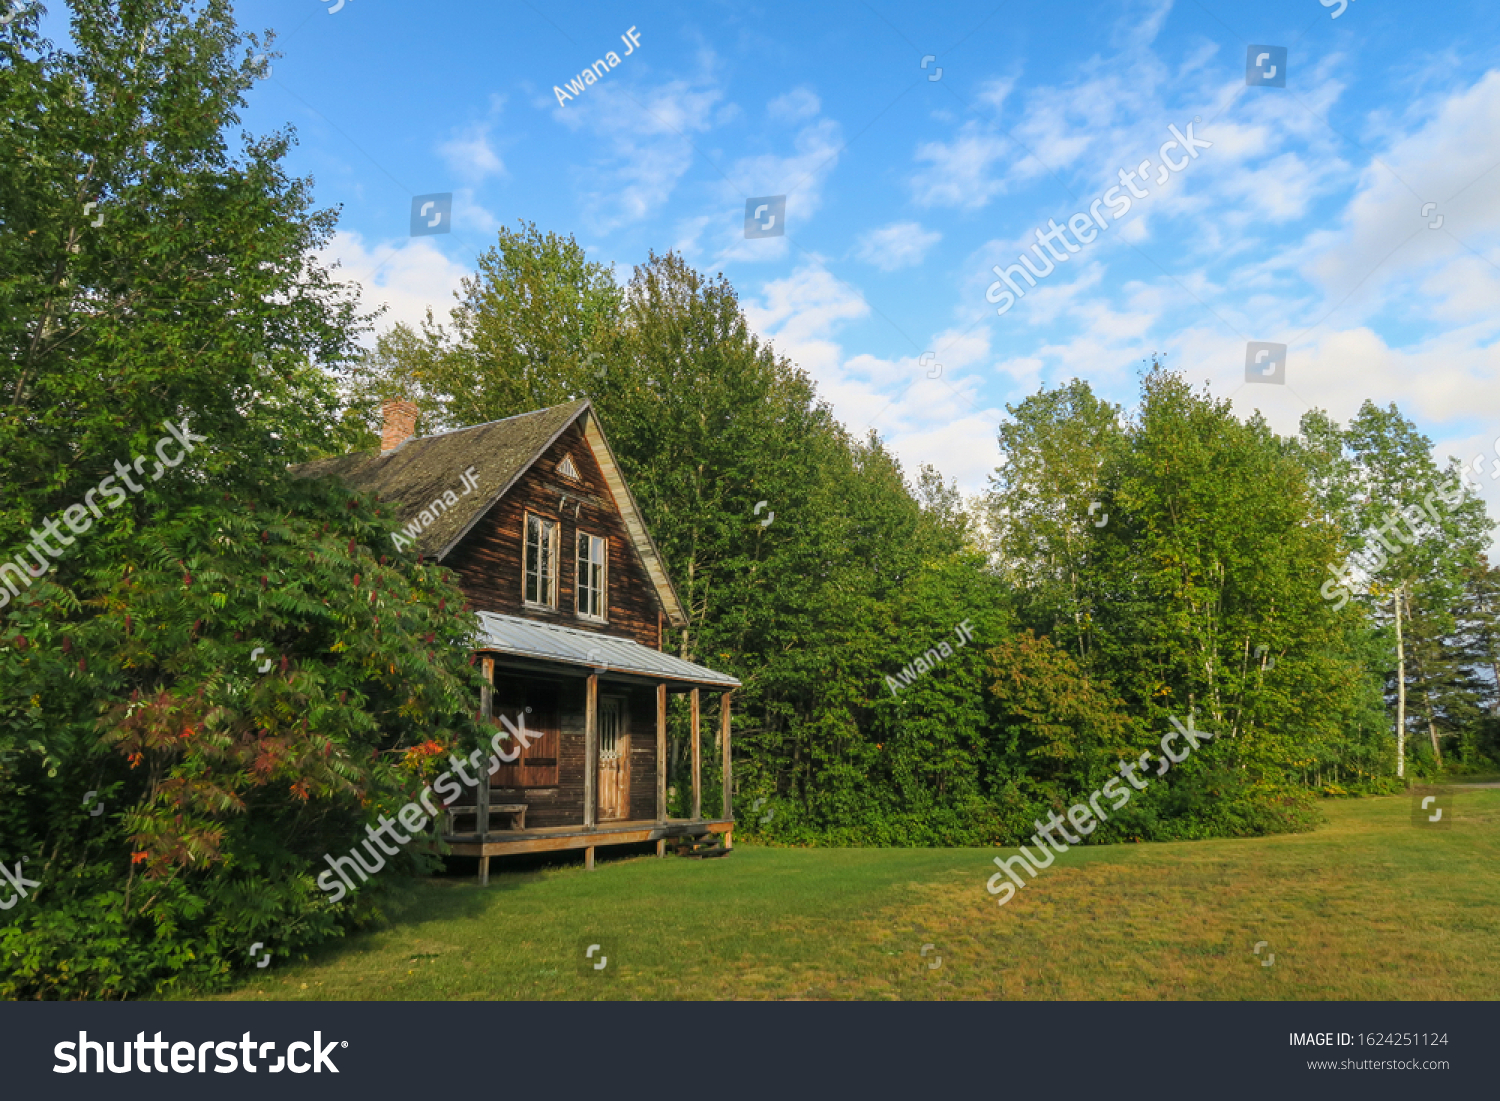 stock-photo-a-wooden-house-at-val-jalber